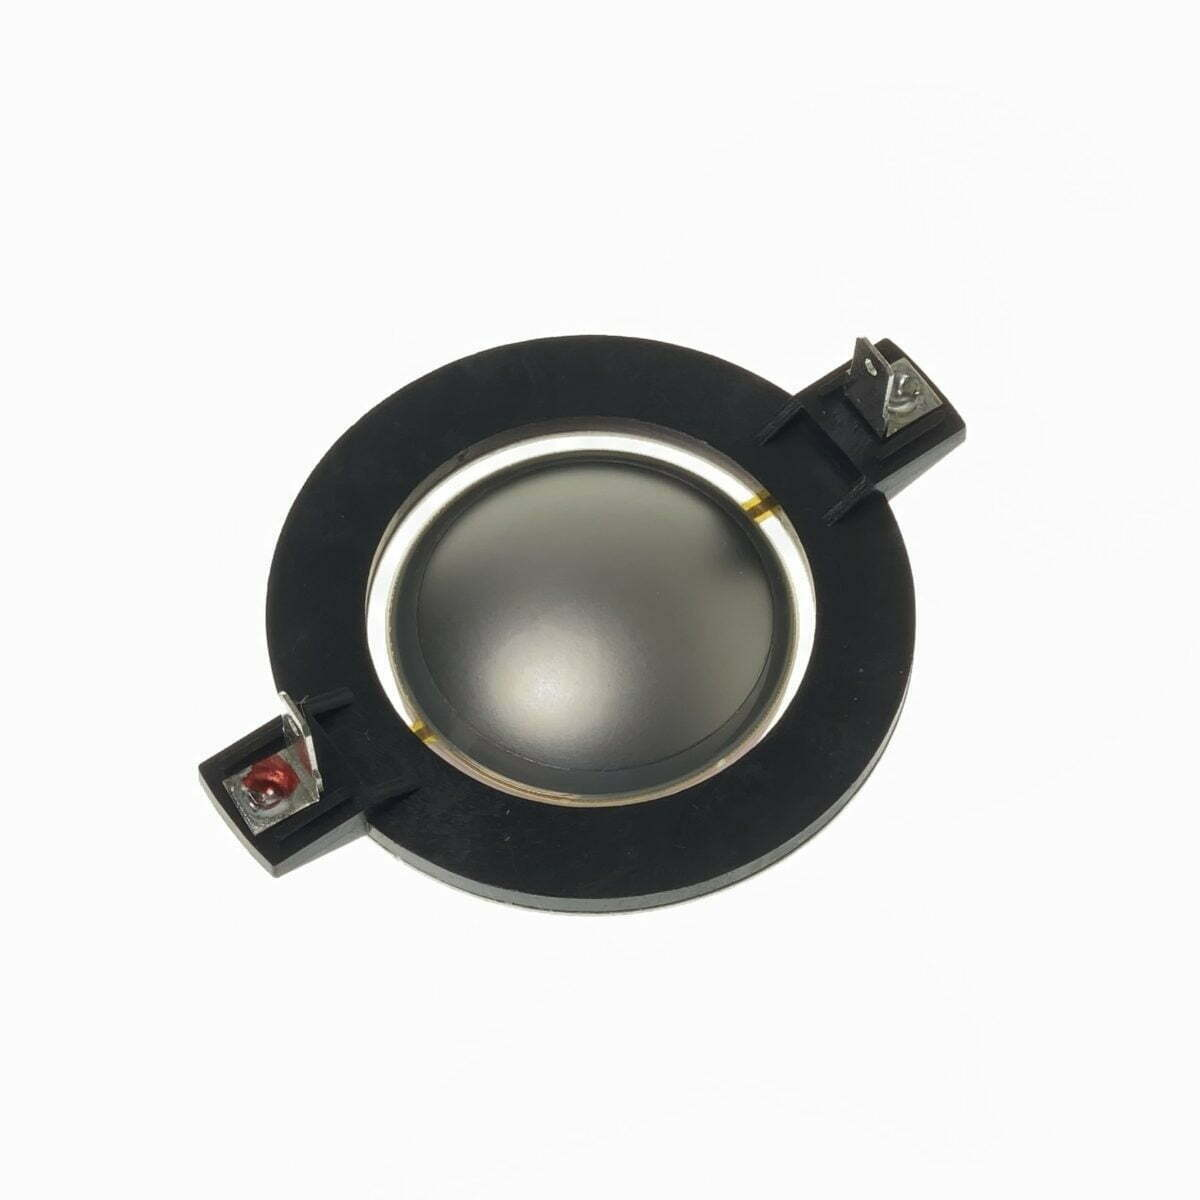 Replacement Diaphragm for Mackie M44ti from SRM450 Cabinet